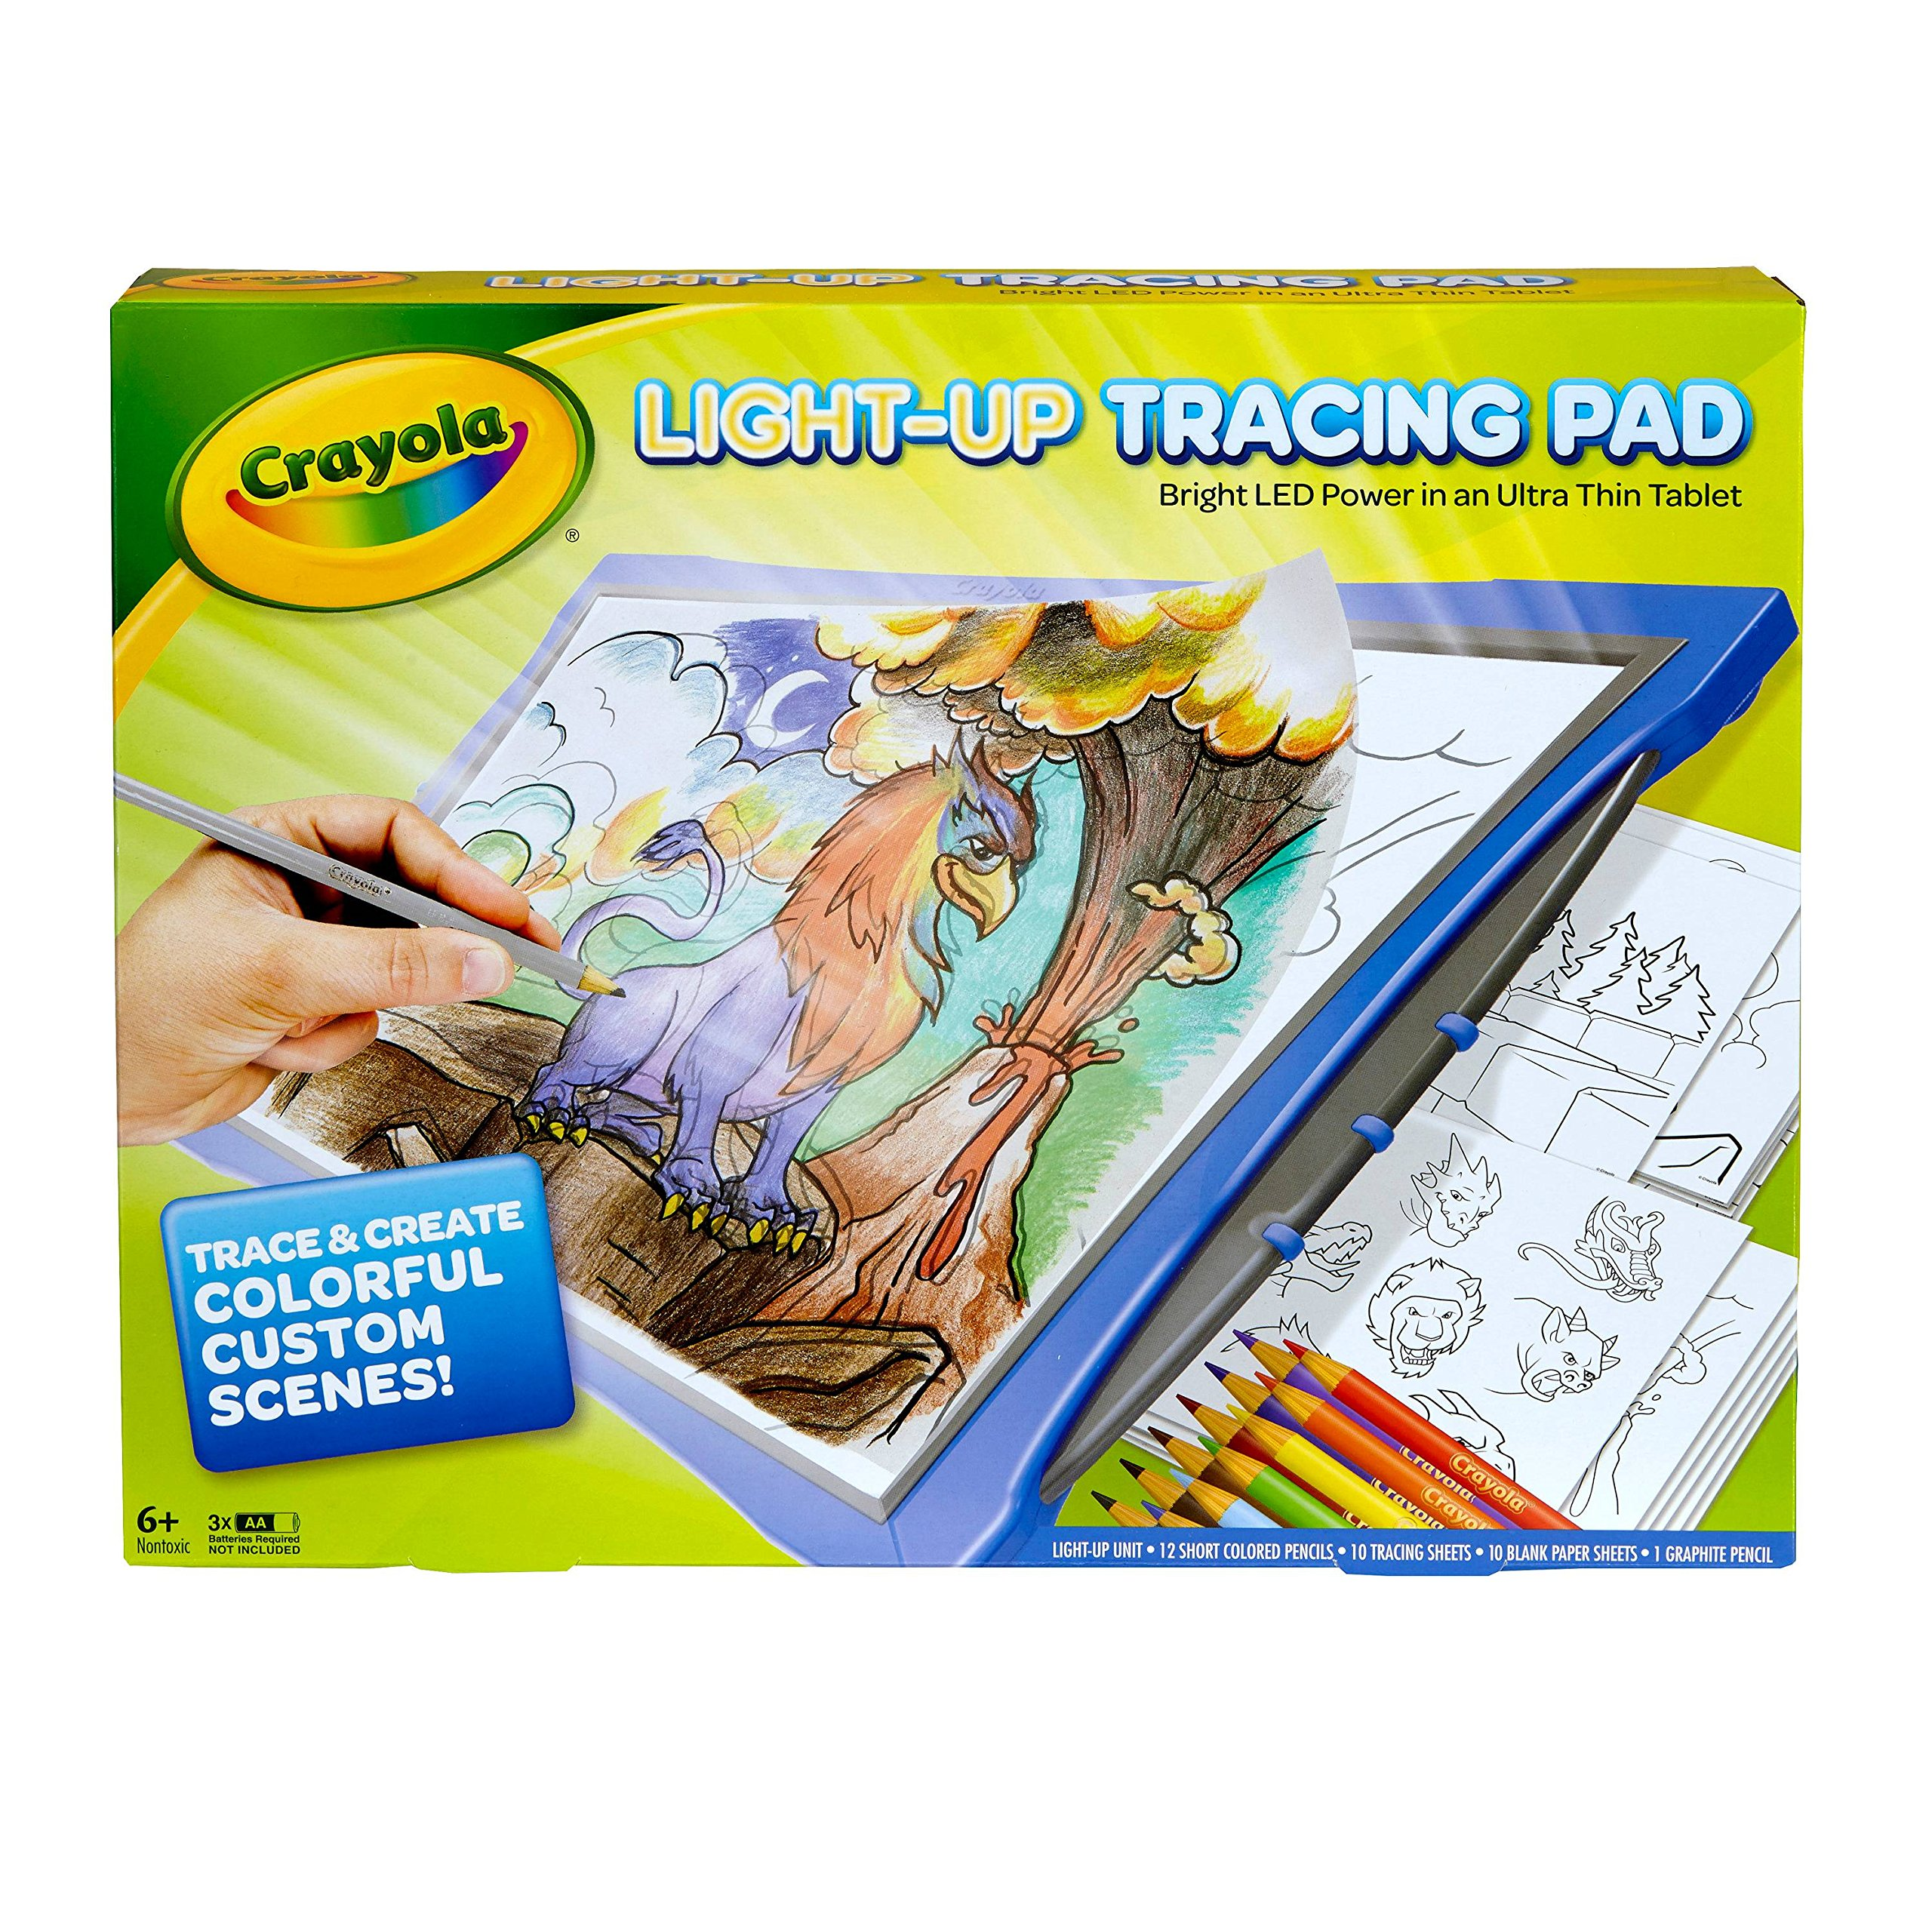 NEWEST MODEL Crayola Light Up Tracing Pad - BLUE -BRIGHT LED POWER in an Ultra Thin Tablet by Crayola (Image #2)